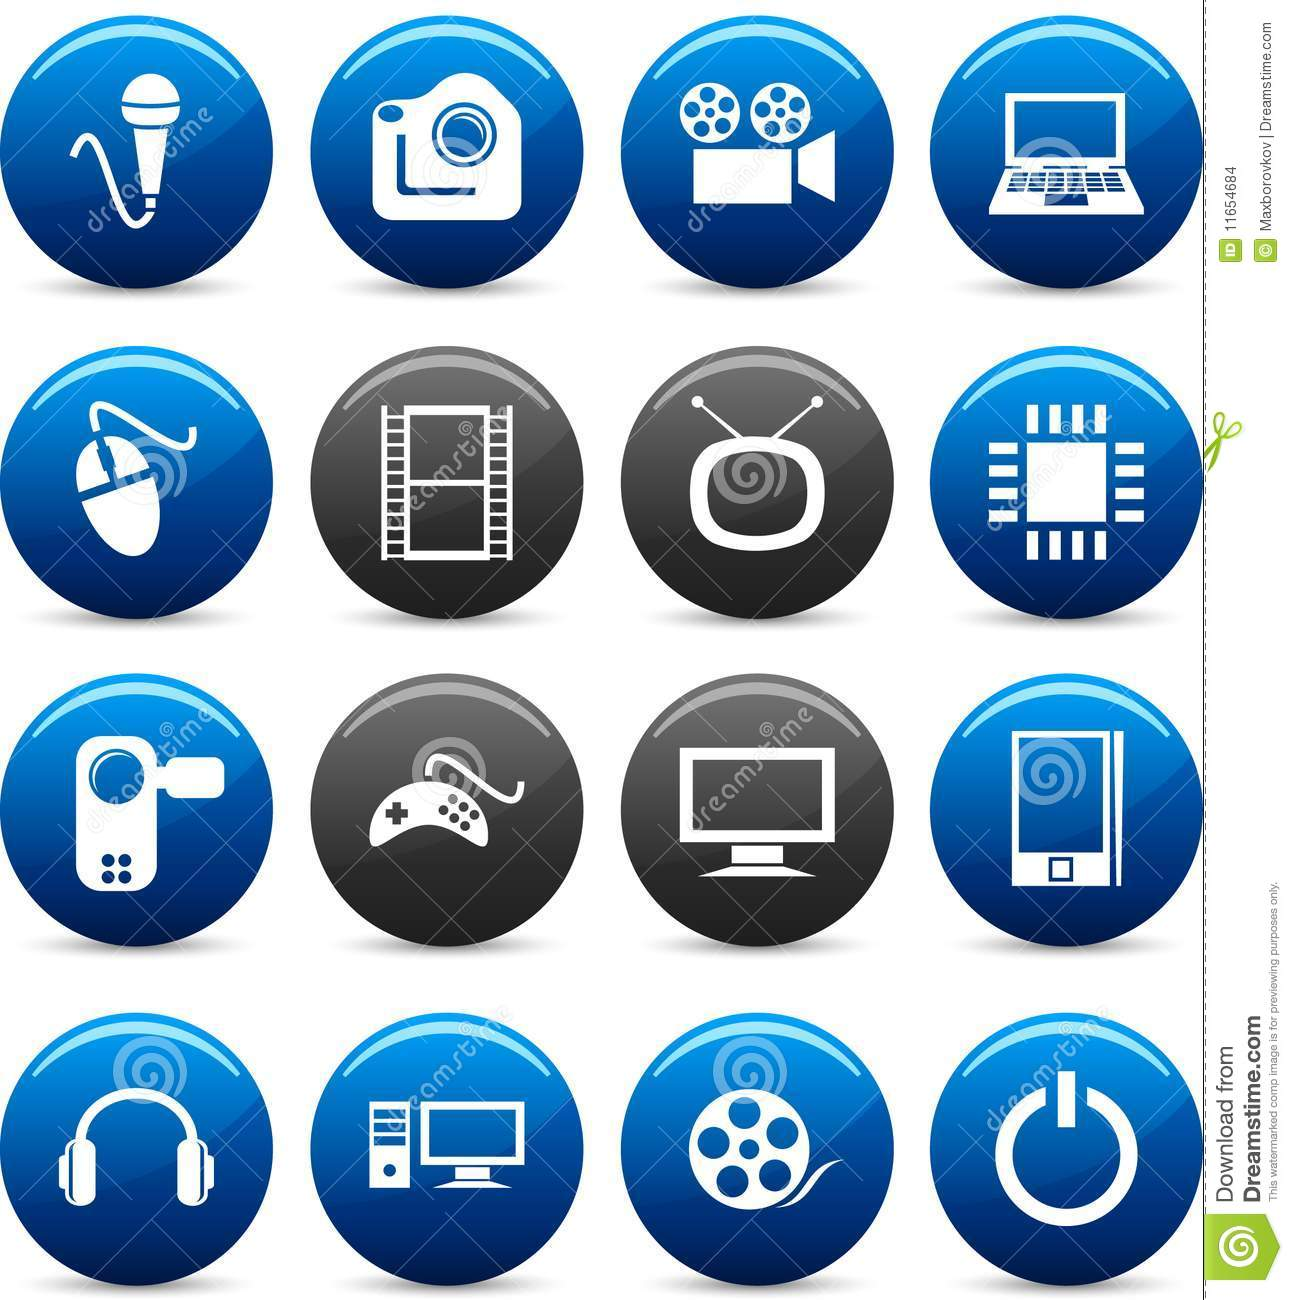 Image Icons - Download Free Image icons here